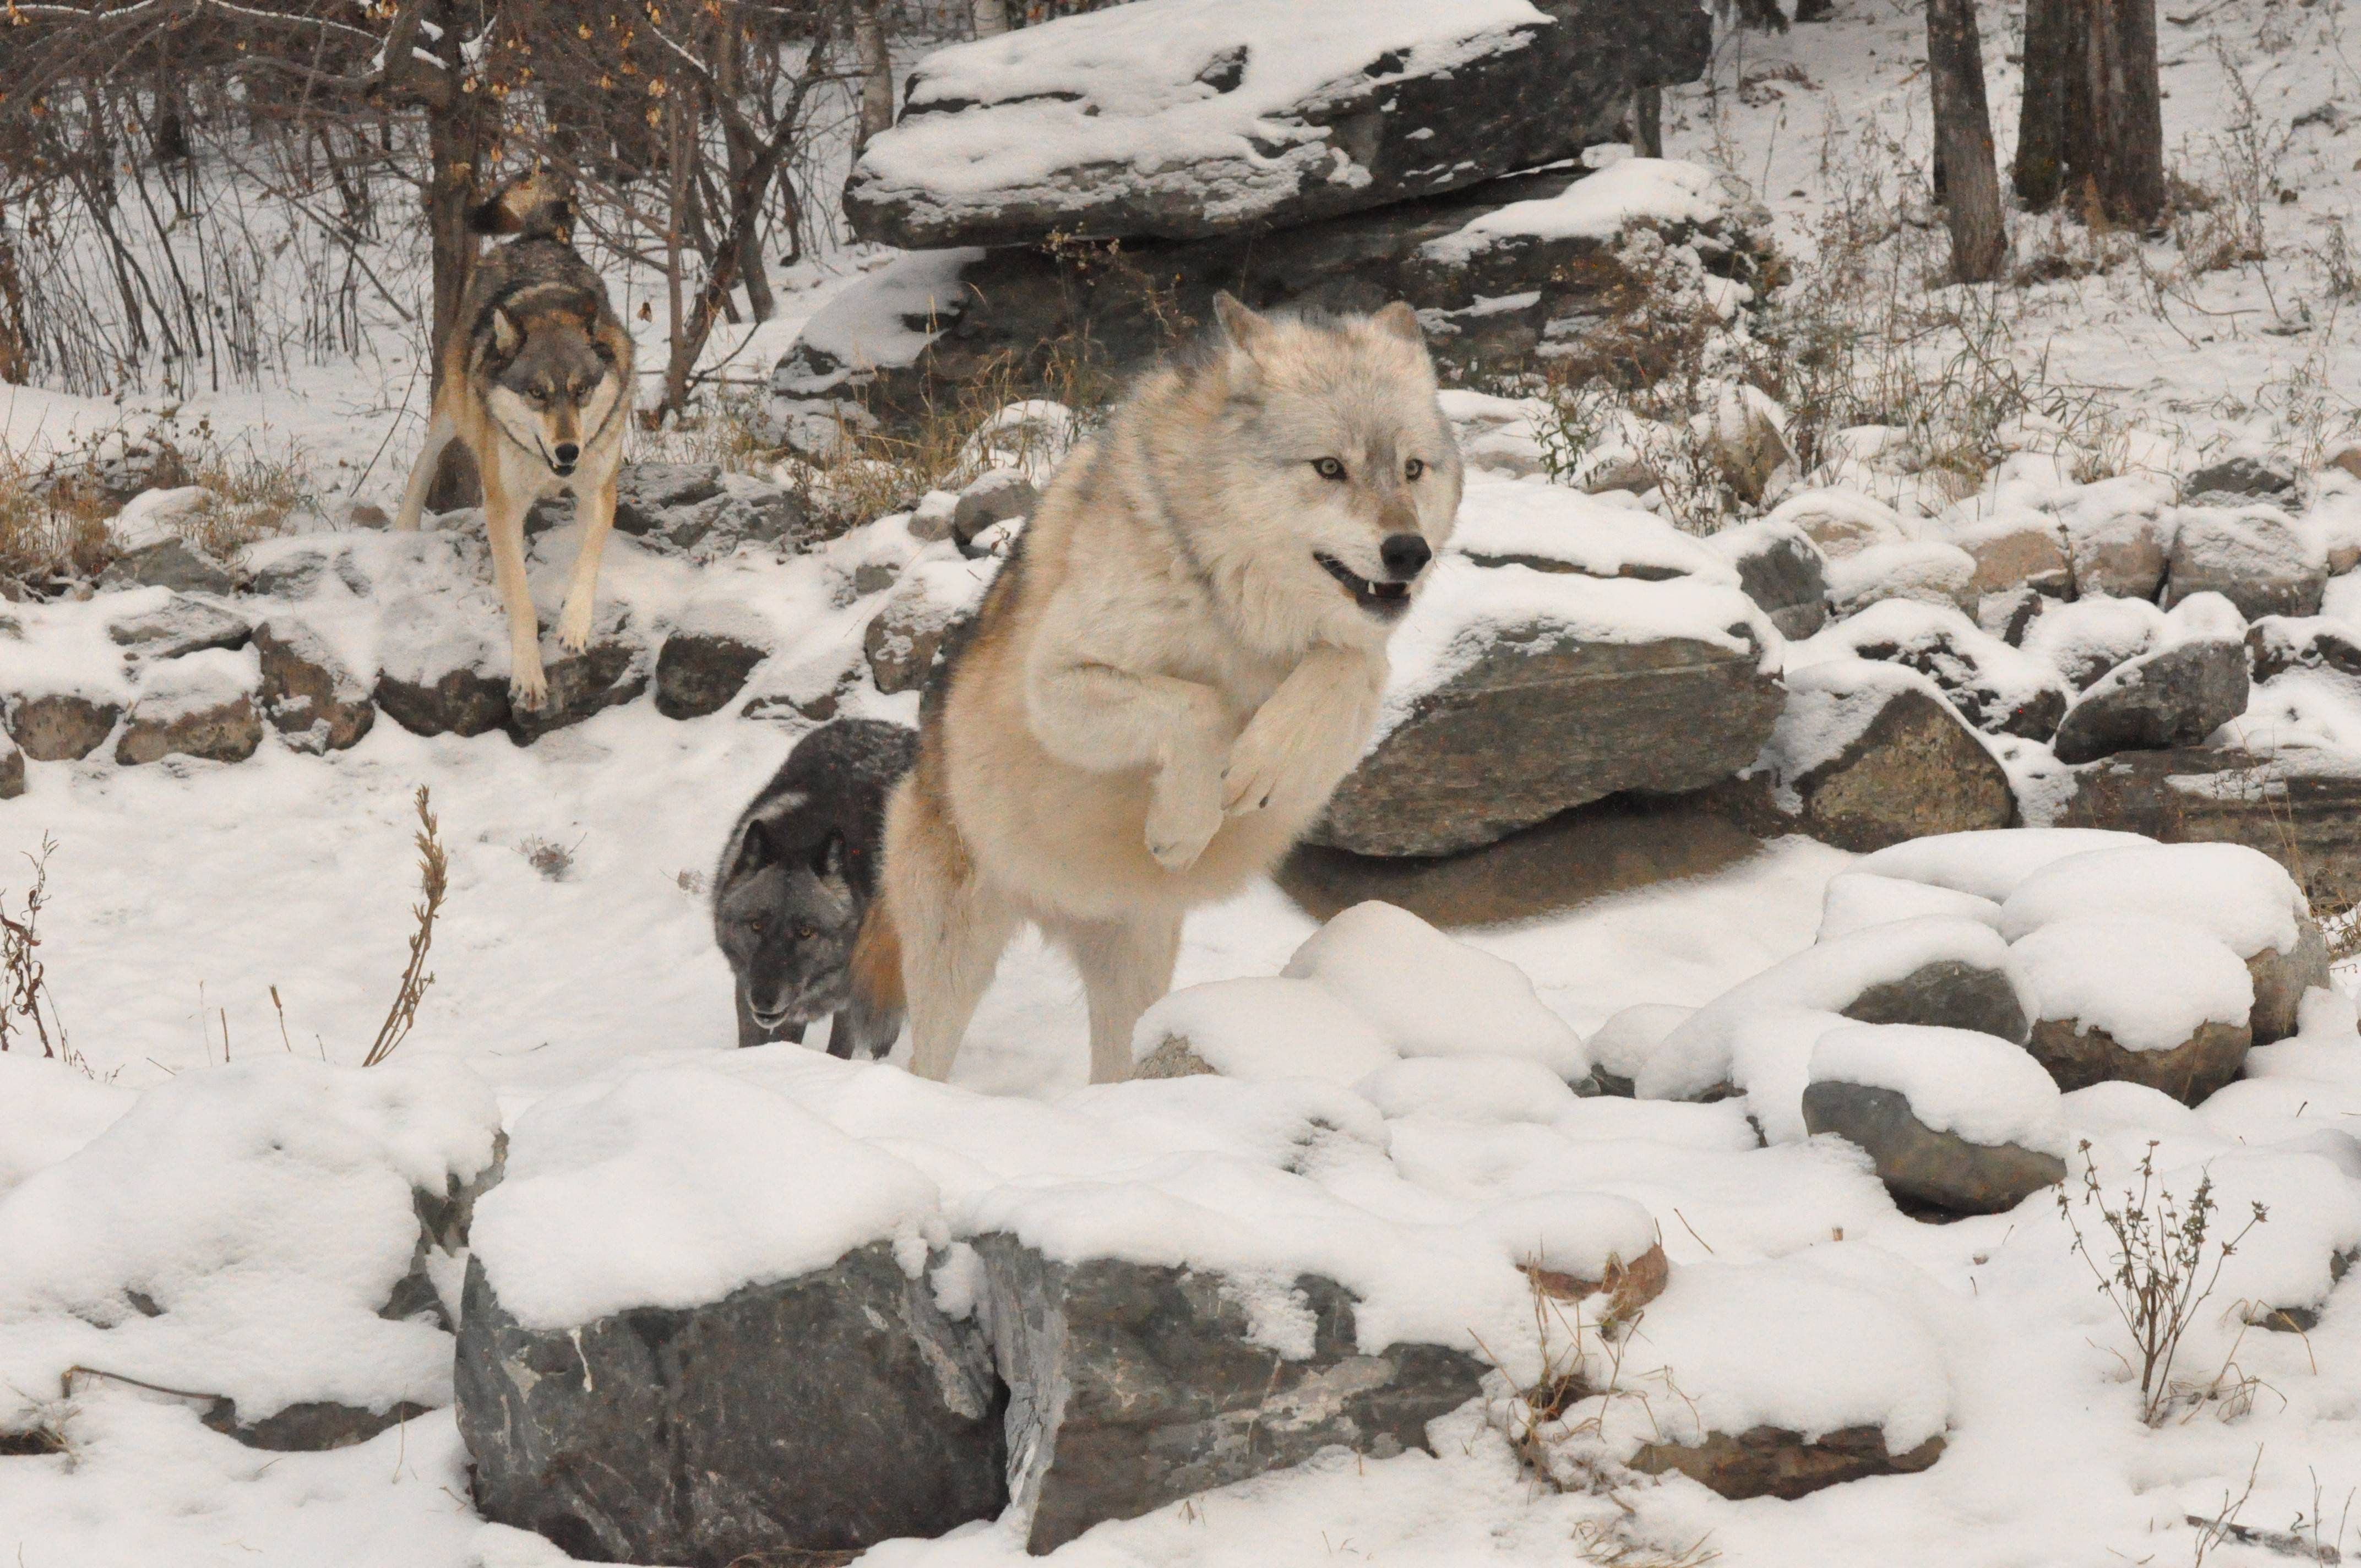 Three of the International Wolf Center's four wolf ambassadors, Boltz, Luna and Denali, thread through the woods on a chase that looks like a wolf version of tag.